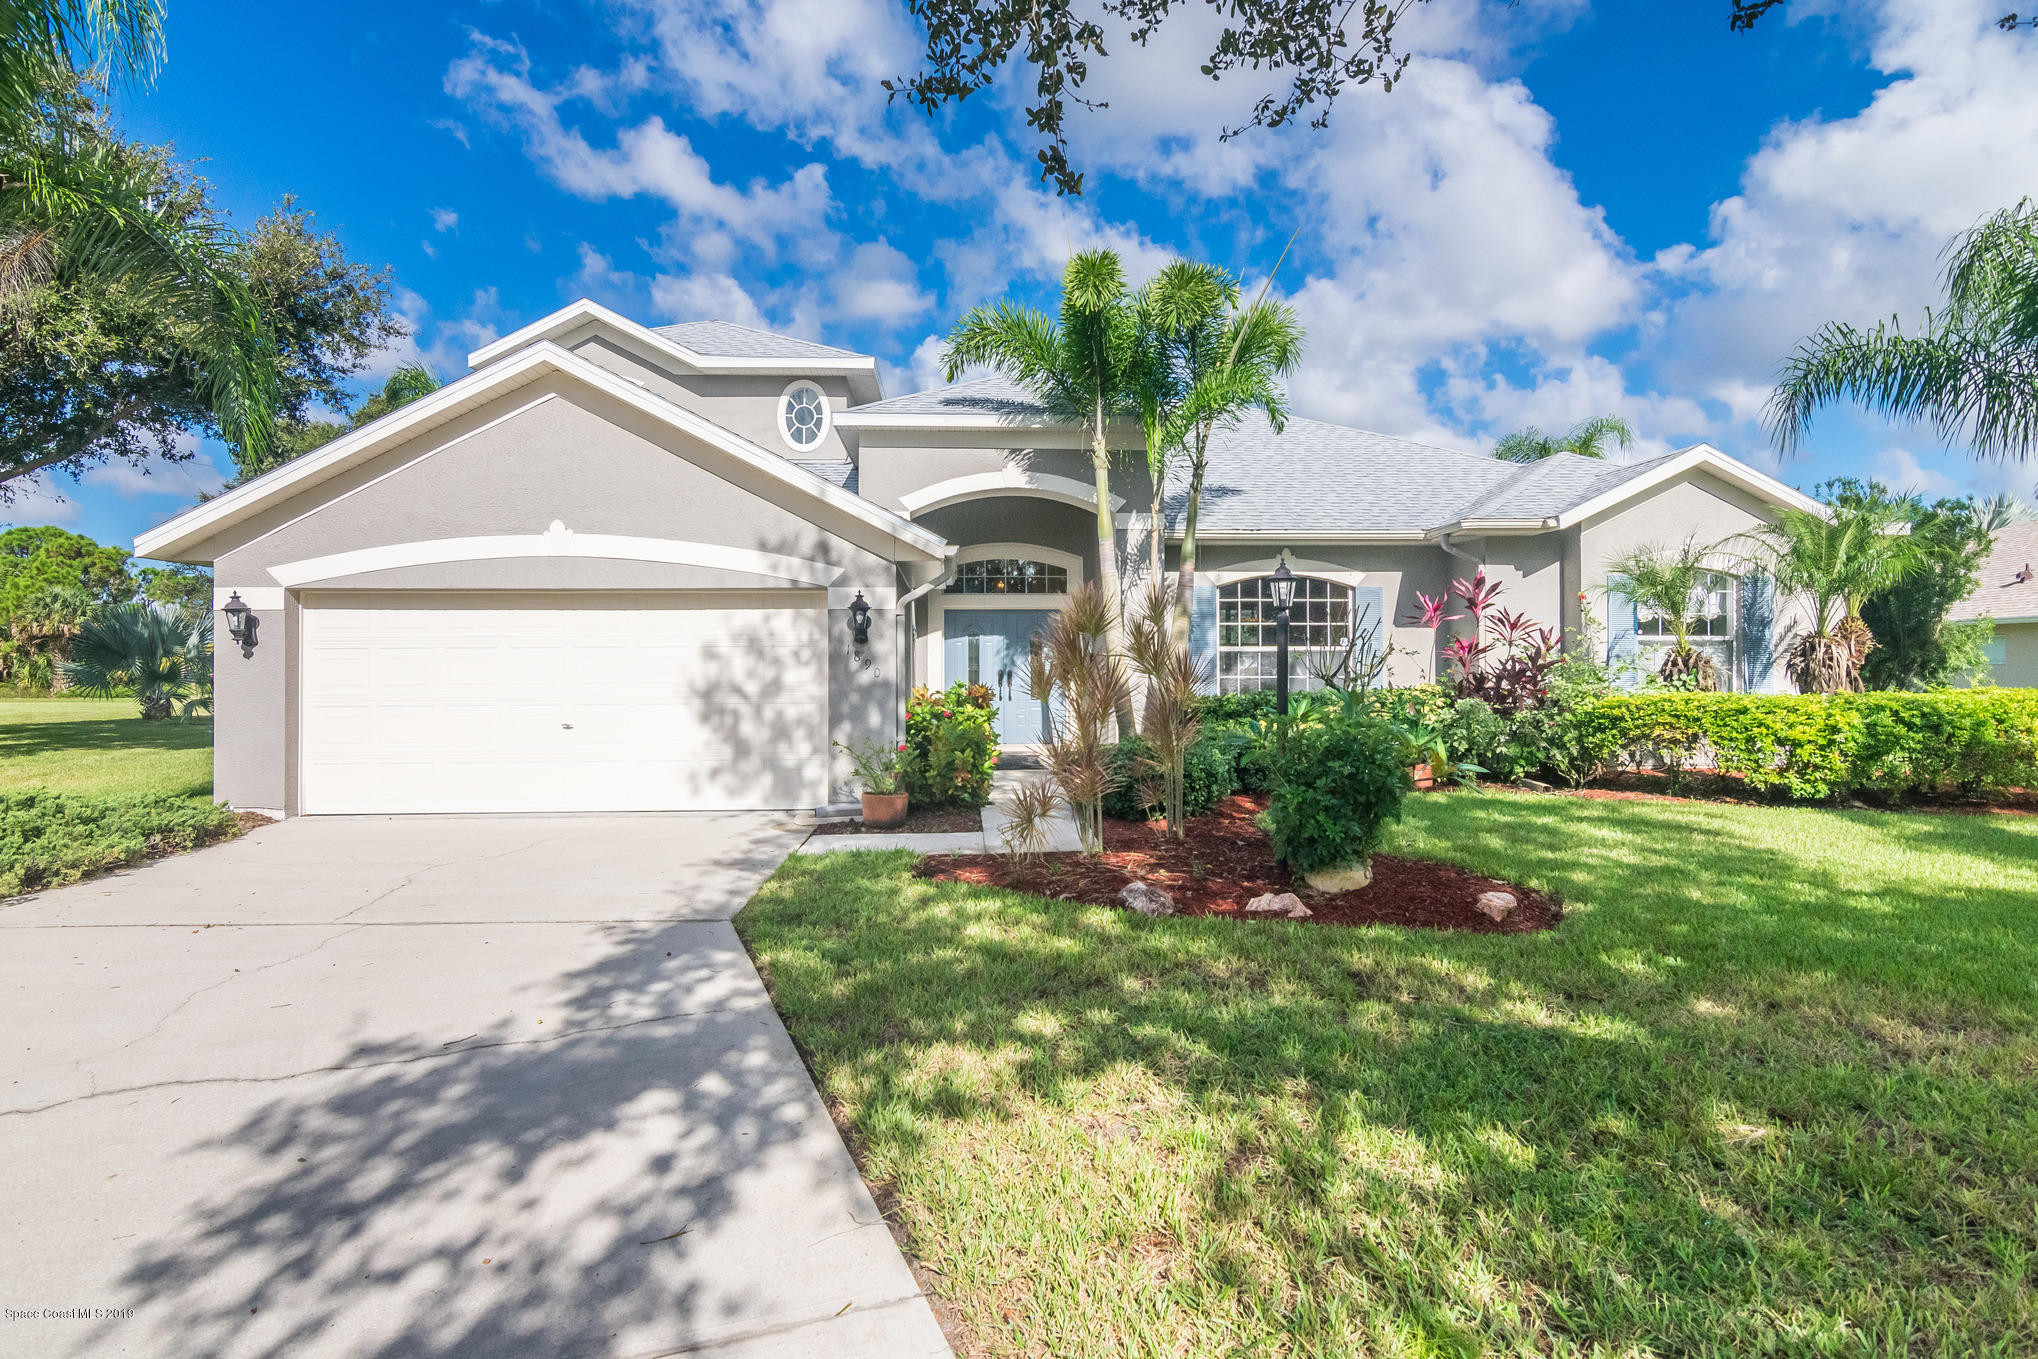 Single Family Homes for Sale at 1890 Windbrook Palm Bay, Florida 32909 United States